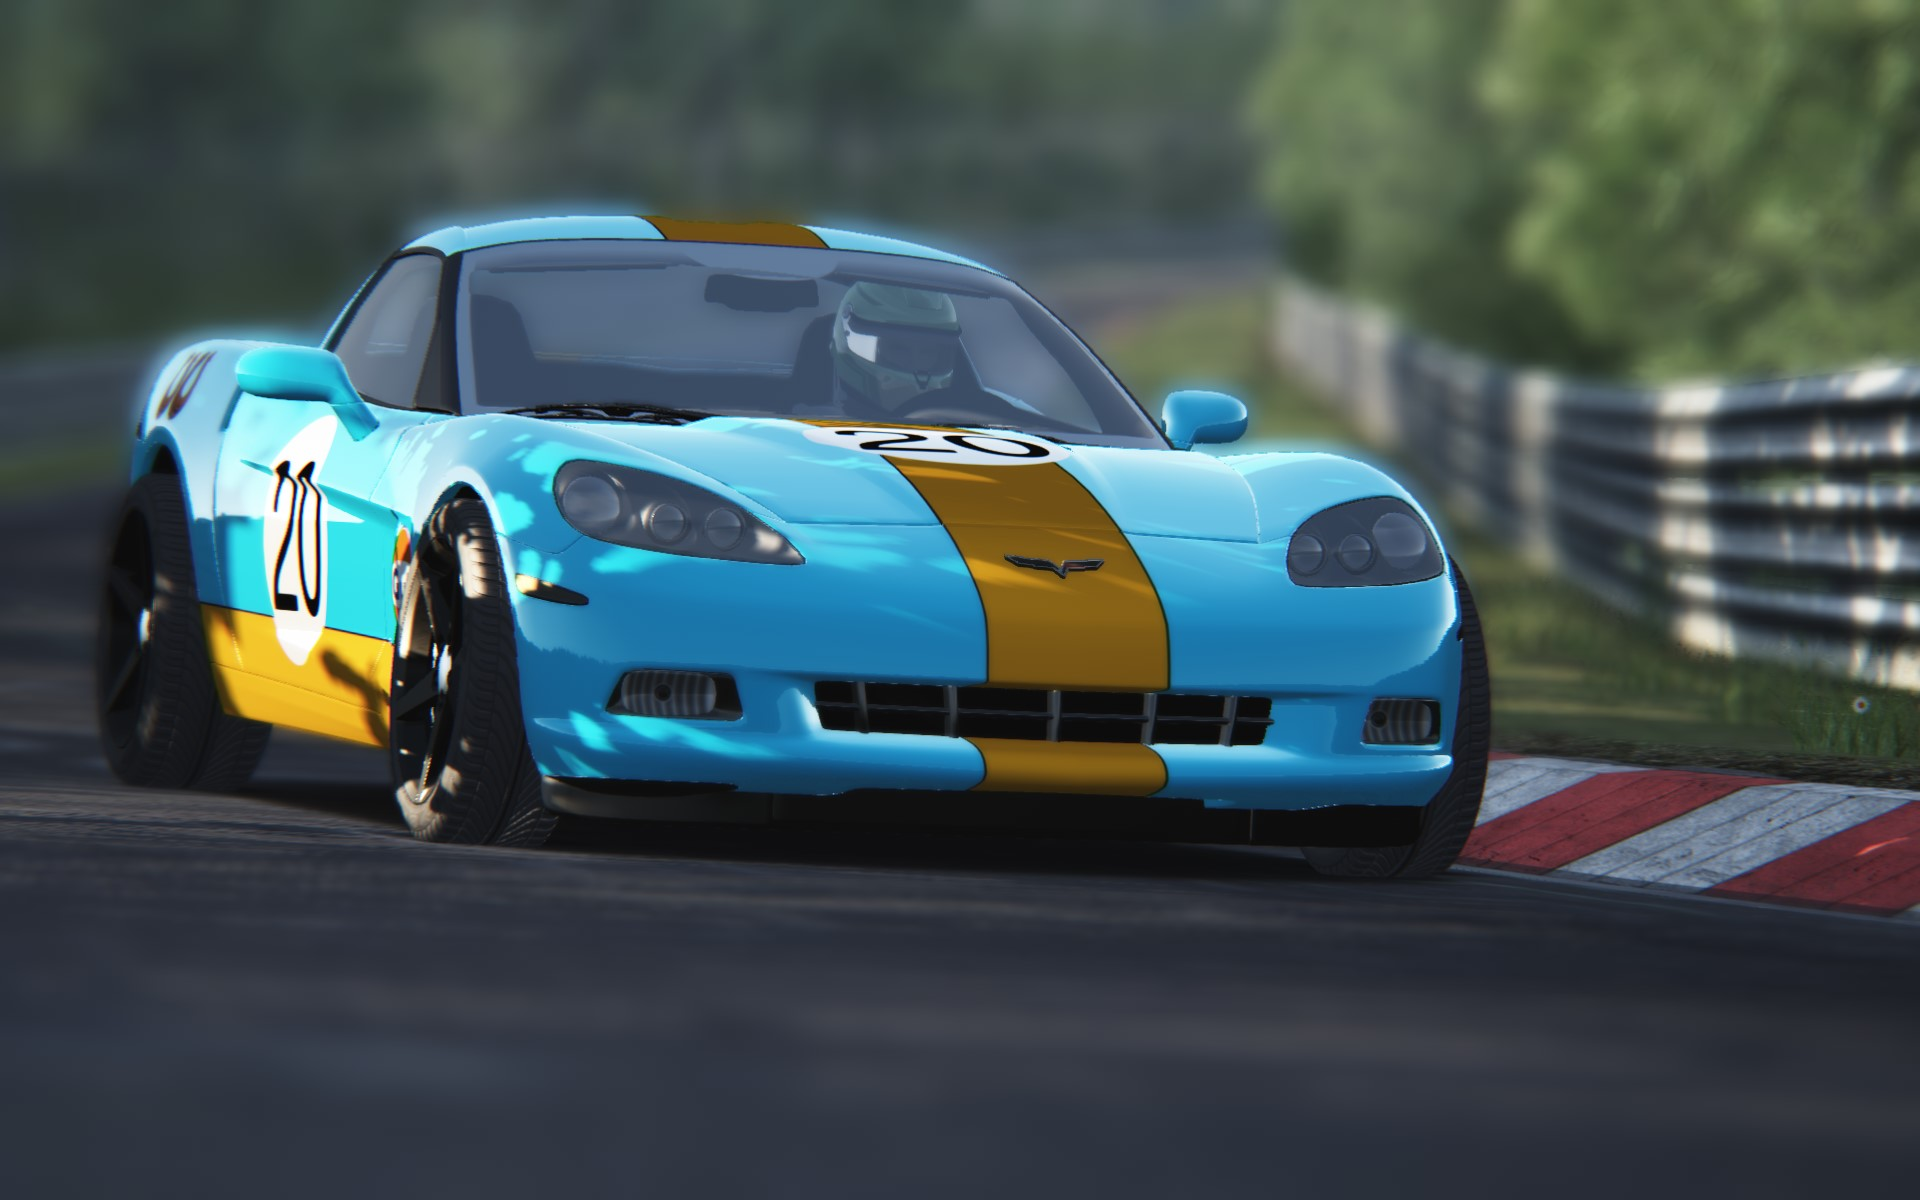 Screenshot_corvette_c6_ks_nordschleife_1-4-115-20-6-27